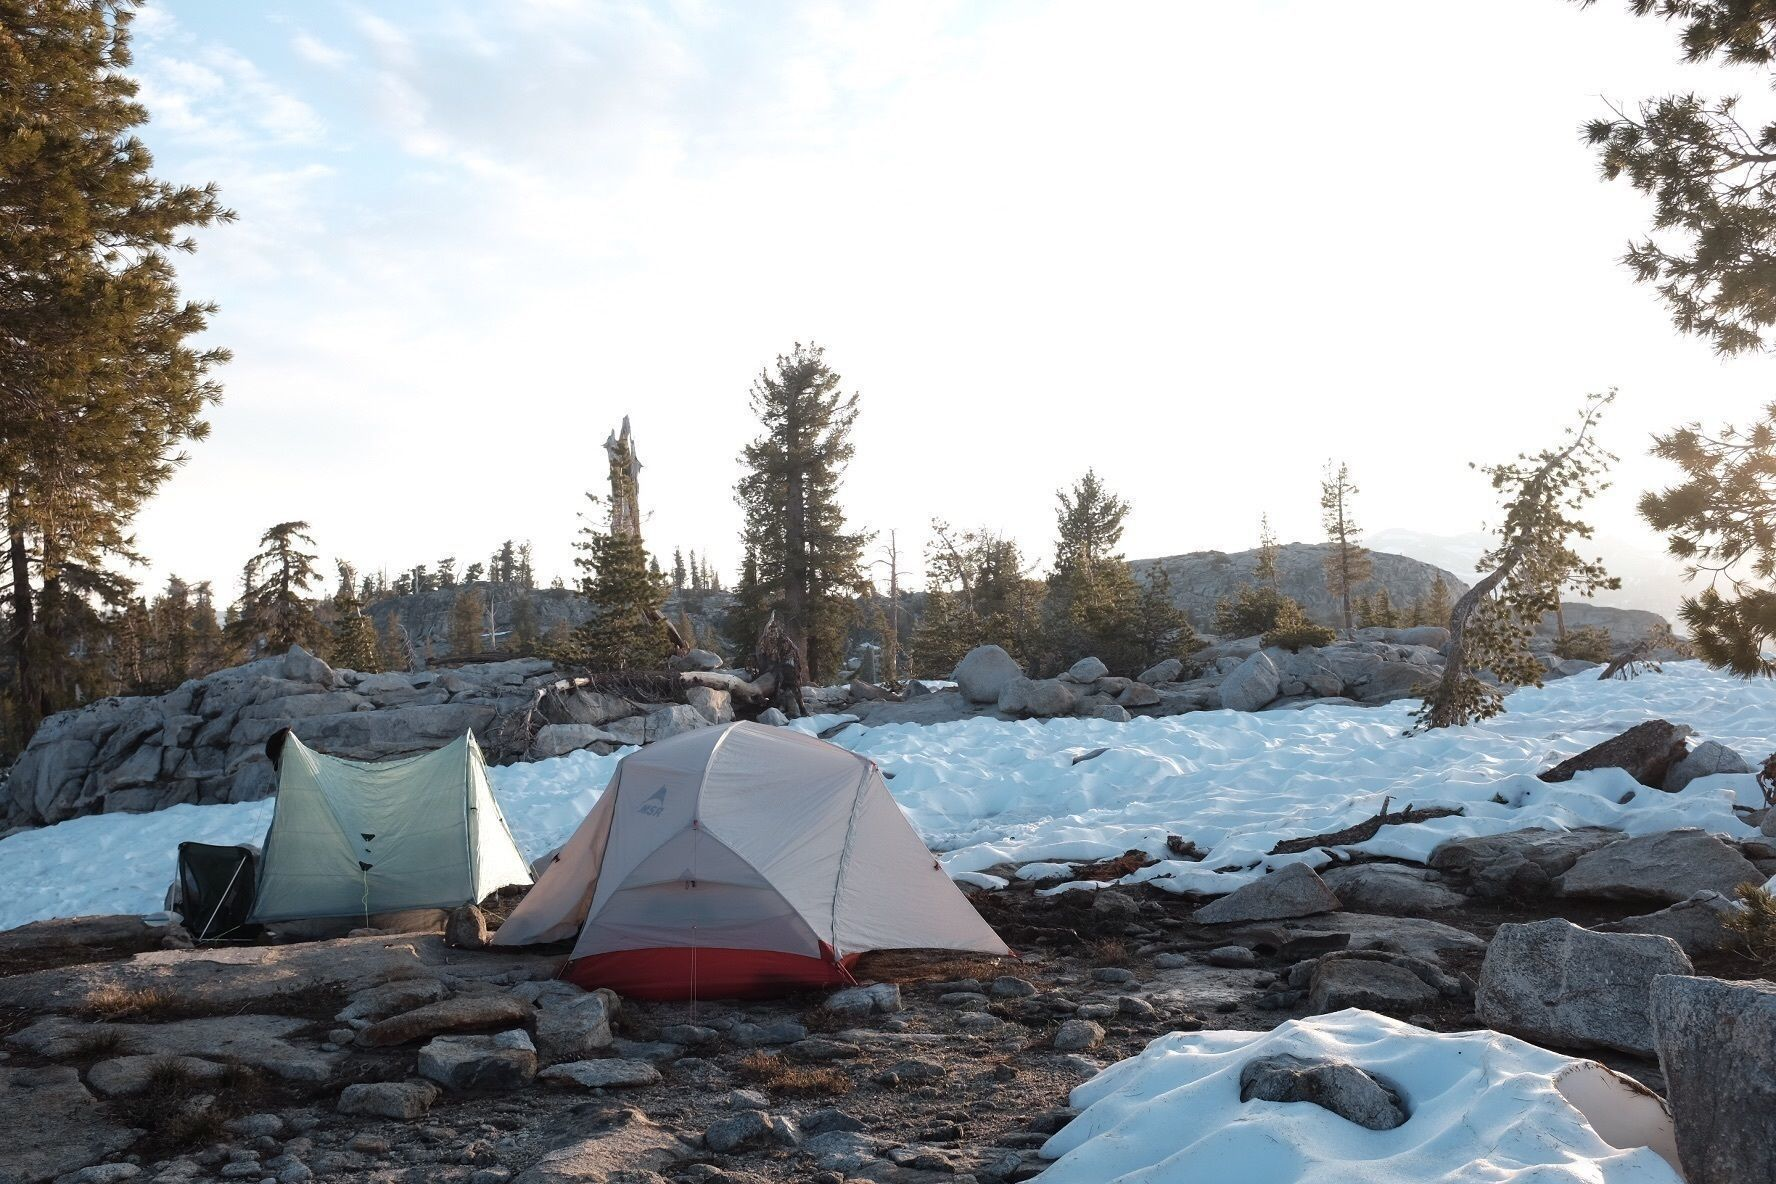 Best Camping Trails in Stanislaus National Forest | AllTrails